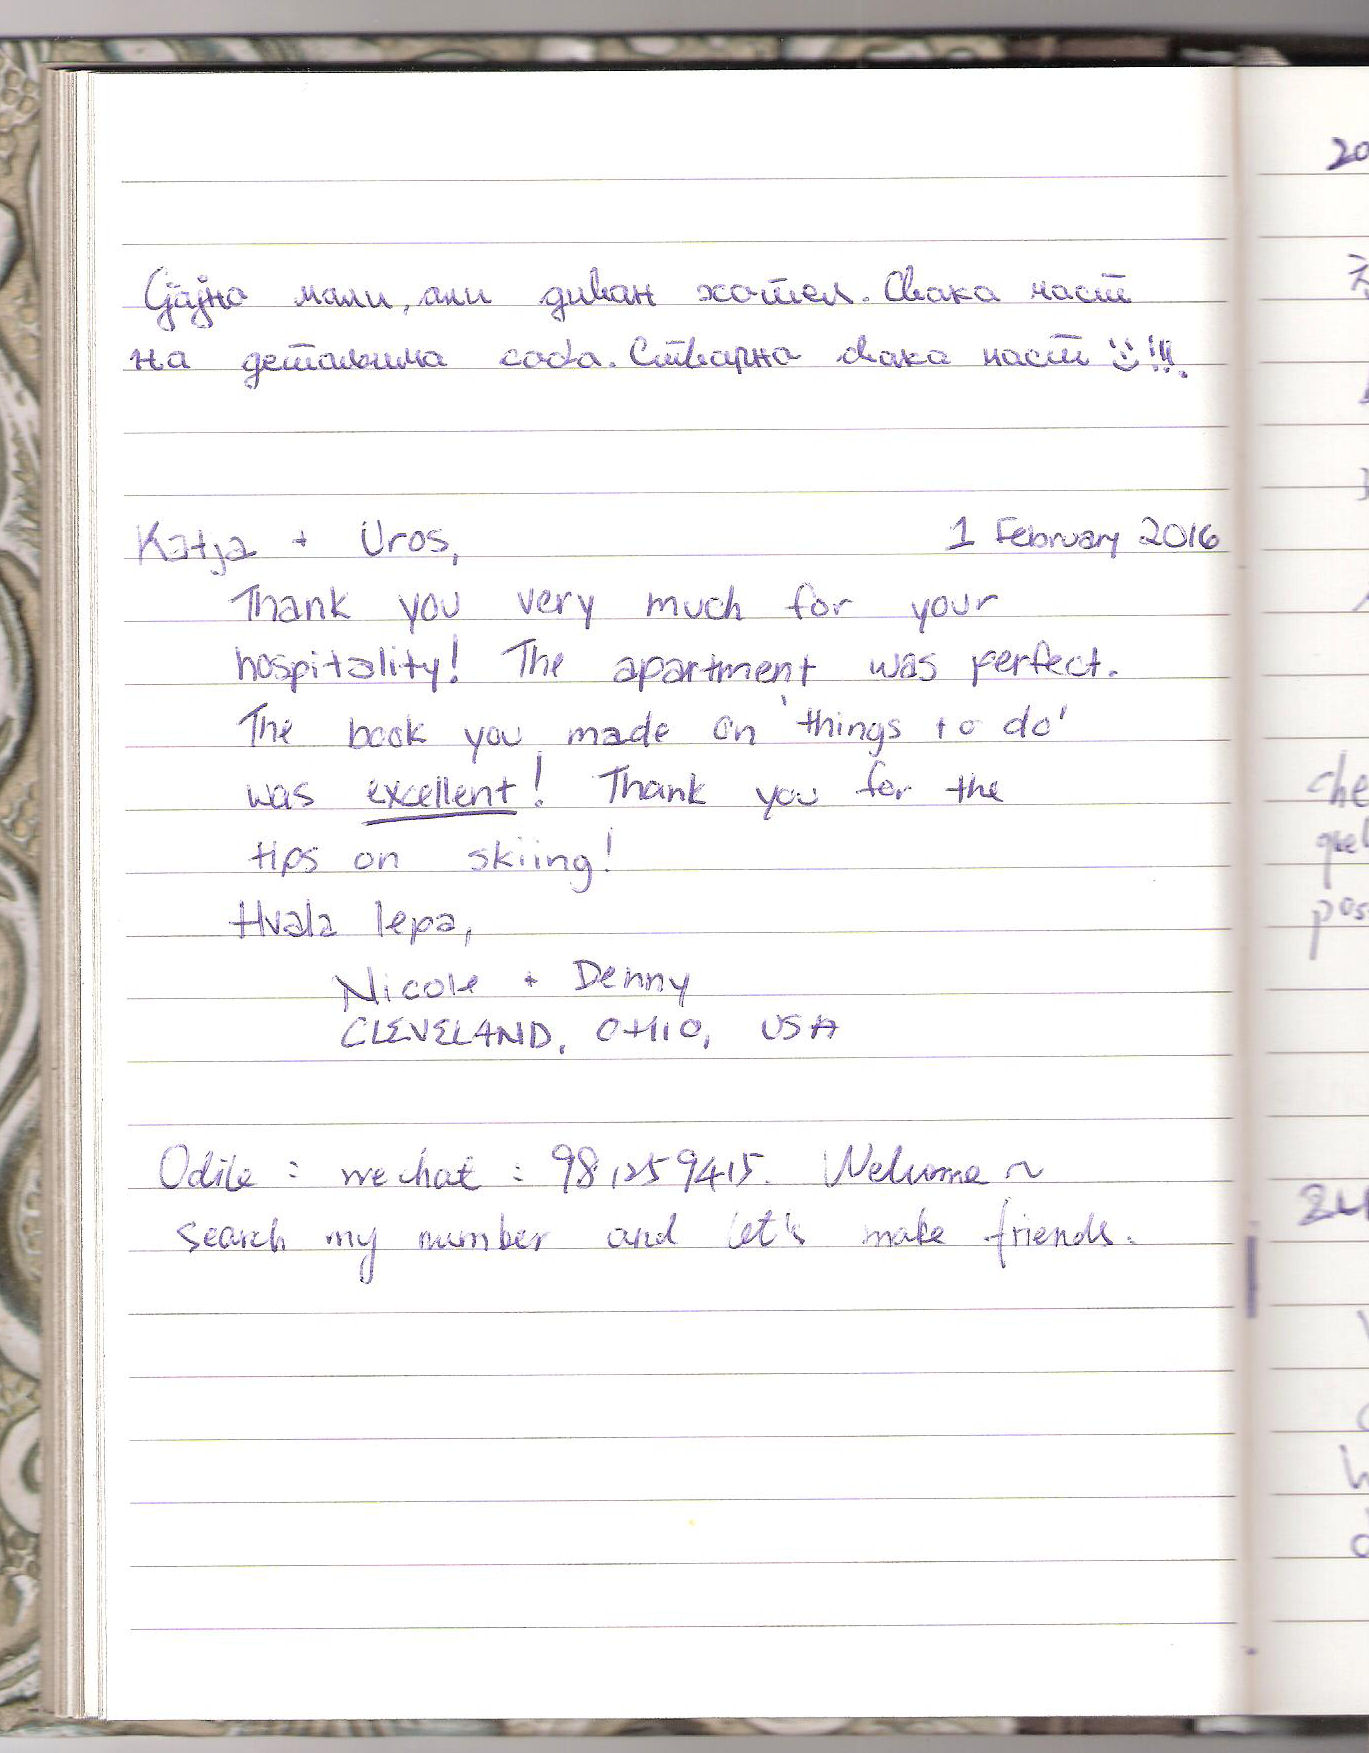 guestbook-page-038